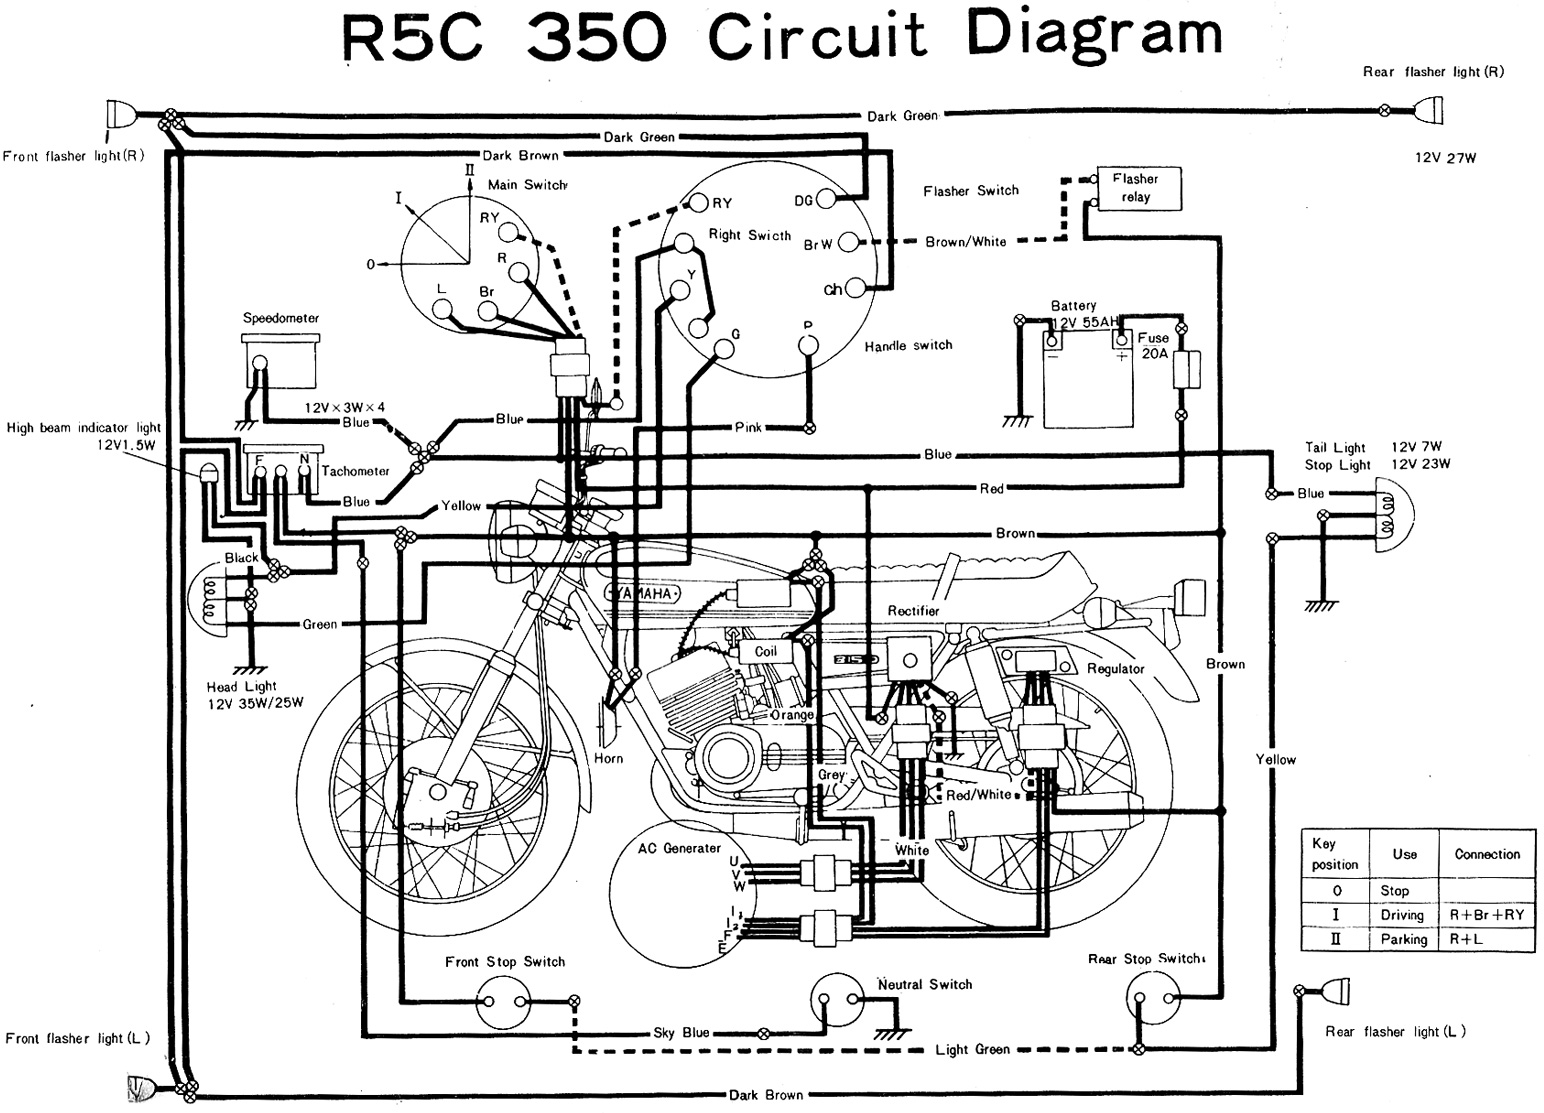 Yamaha rd r c wiring diagram evan fell motorcycle works